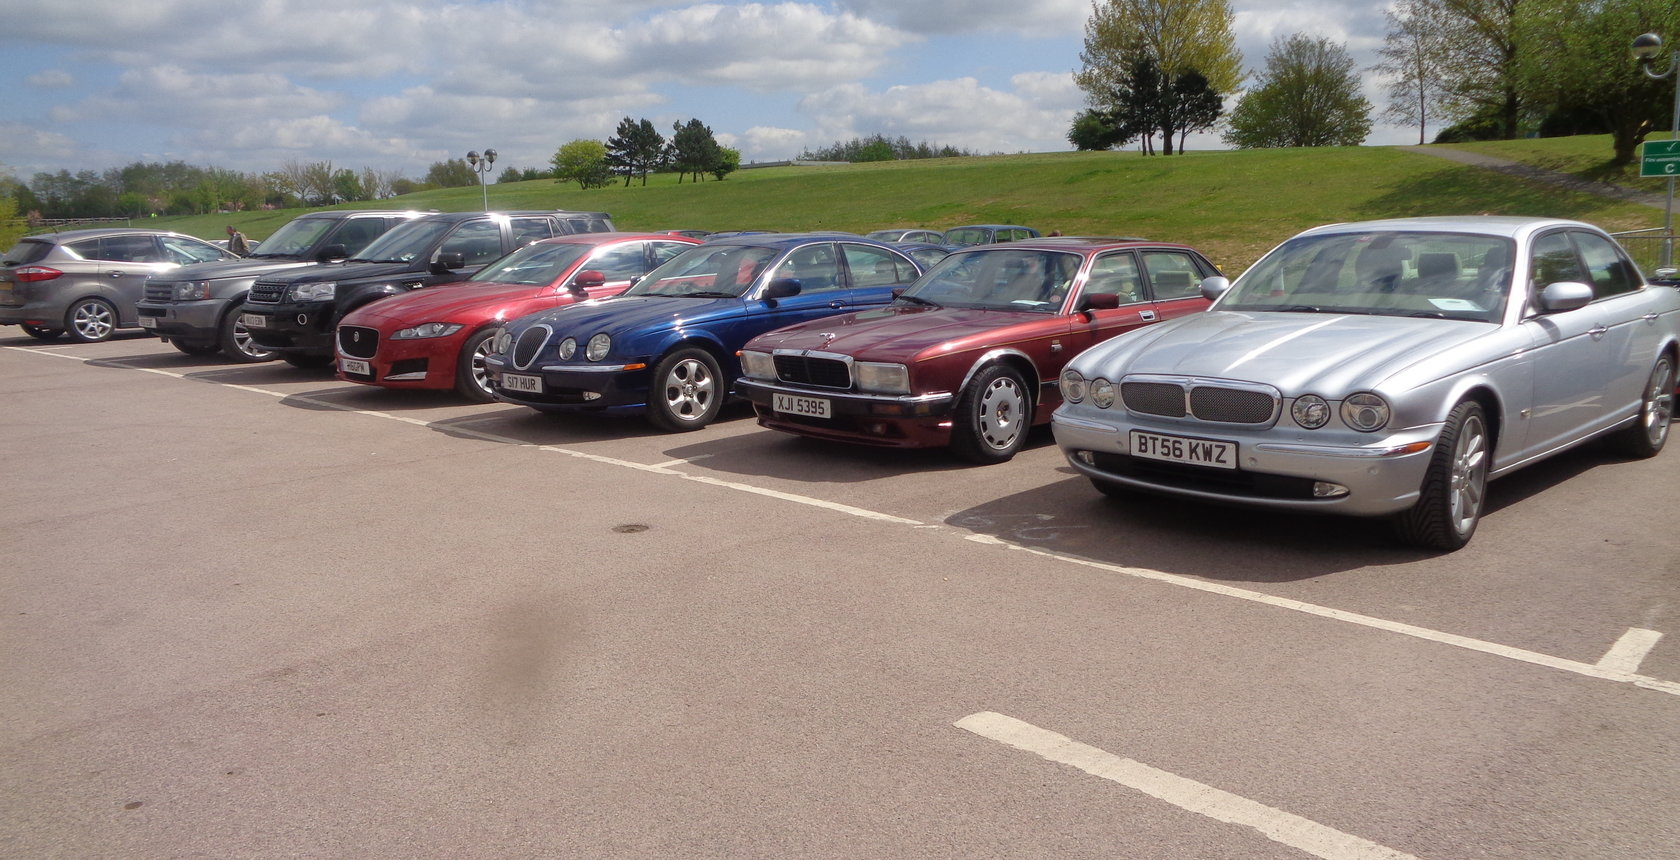 Notts Borders Members Cars